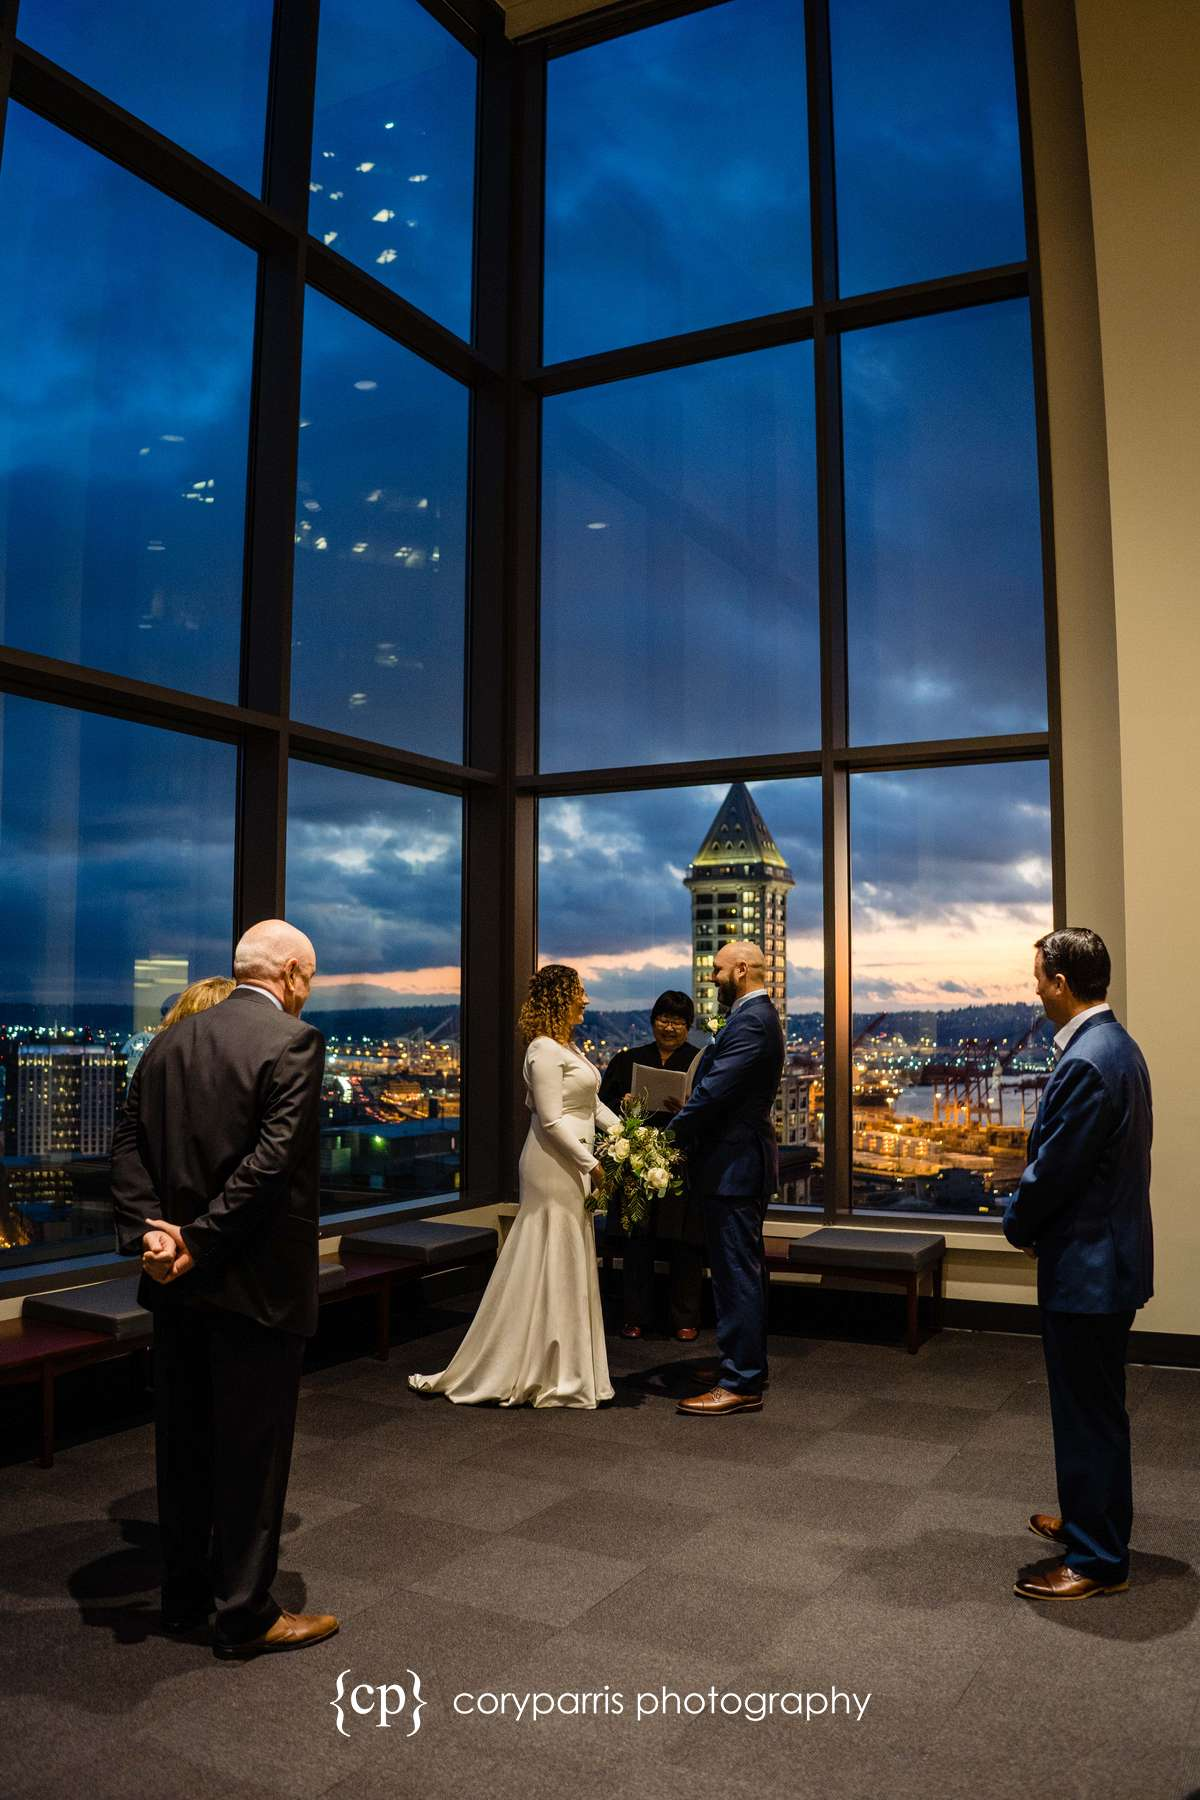 160-Seattle-Elope-Courthouse.jpg